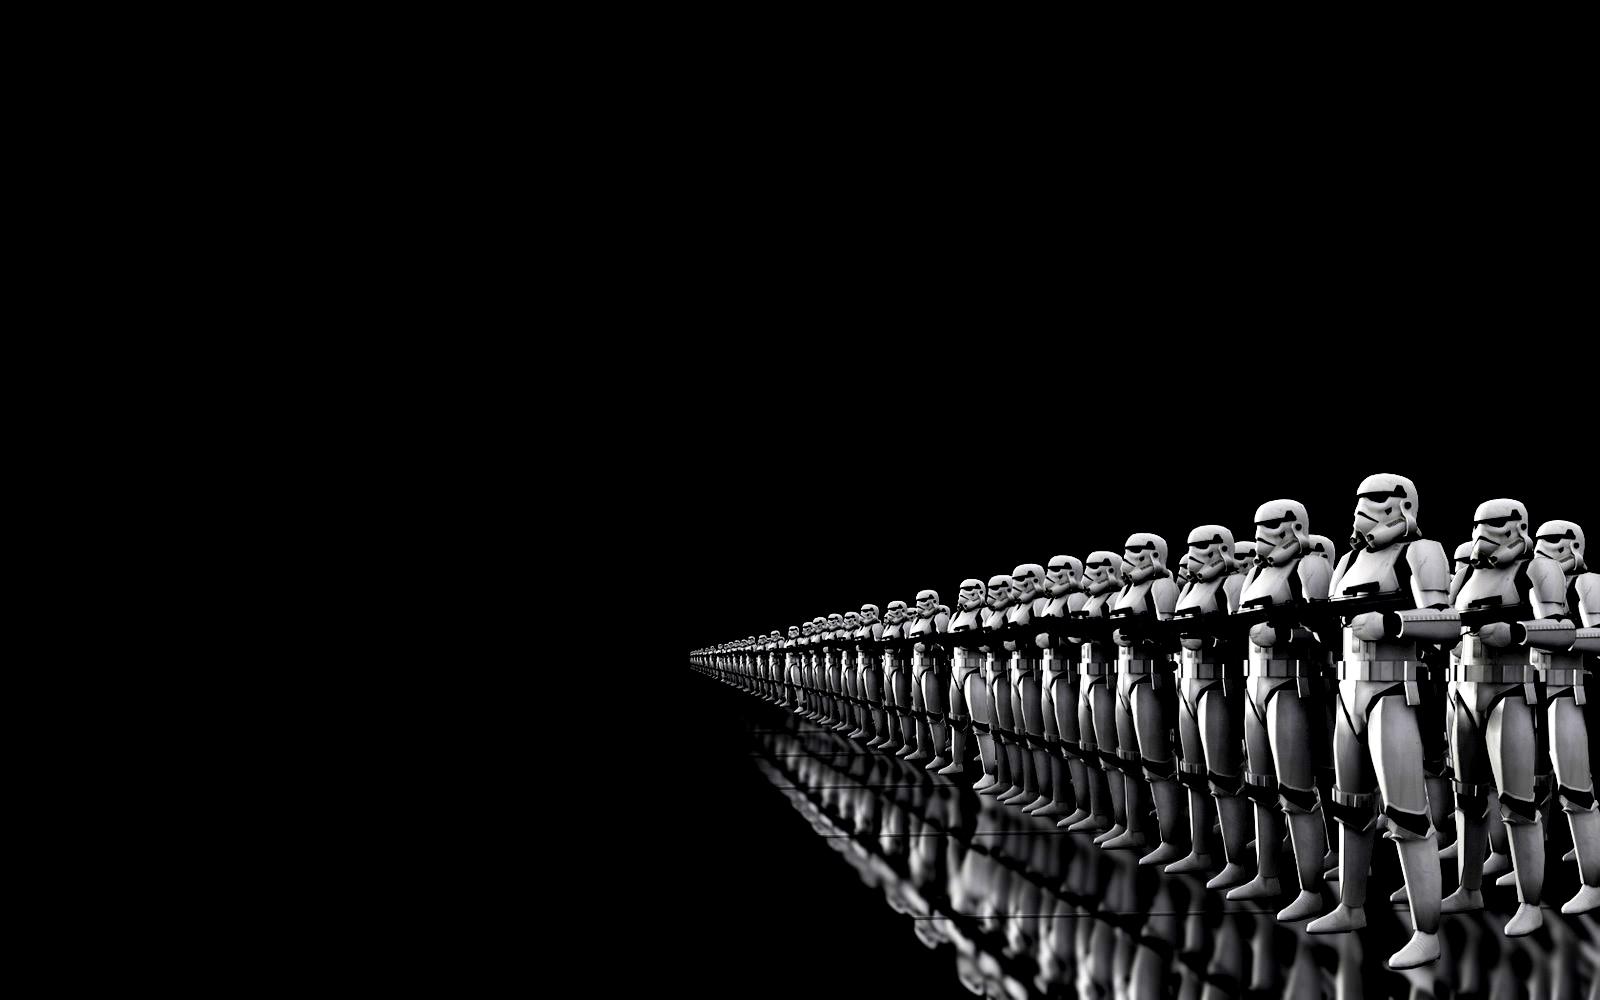 stormtroopers-star-wars_wallpaper